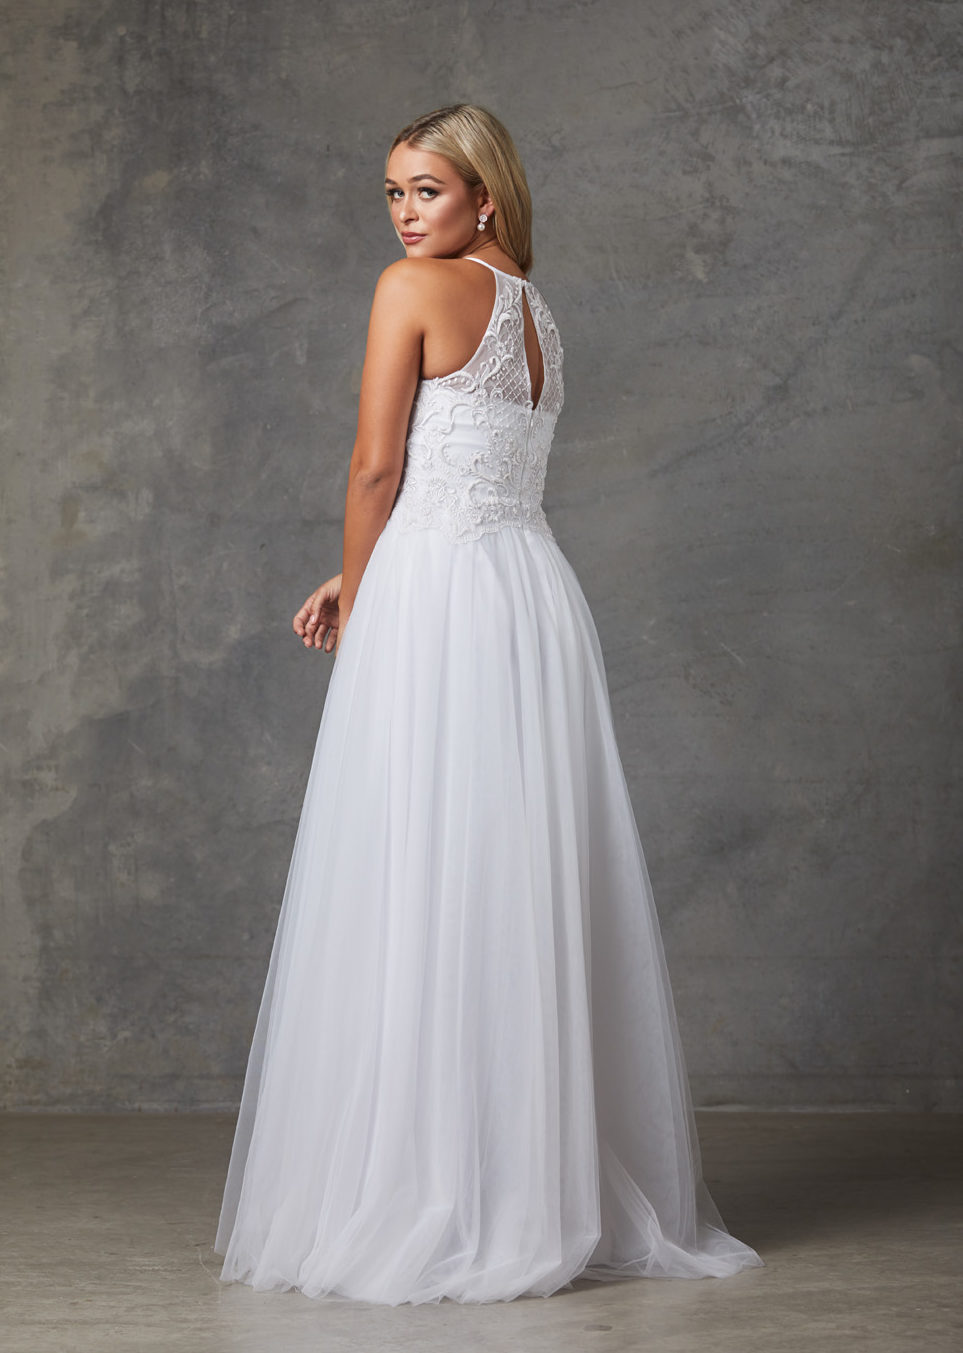 Sharnie Wedding Dress-Purewhite